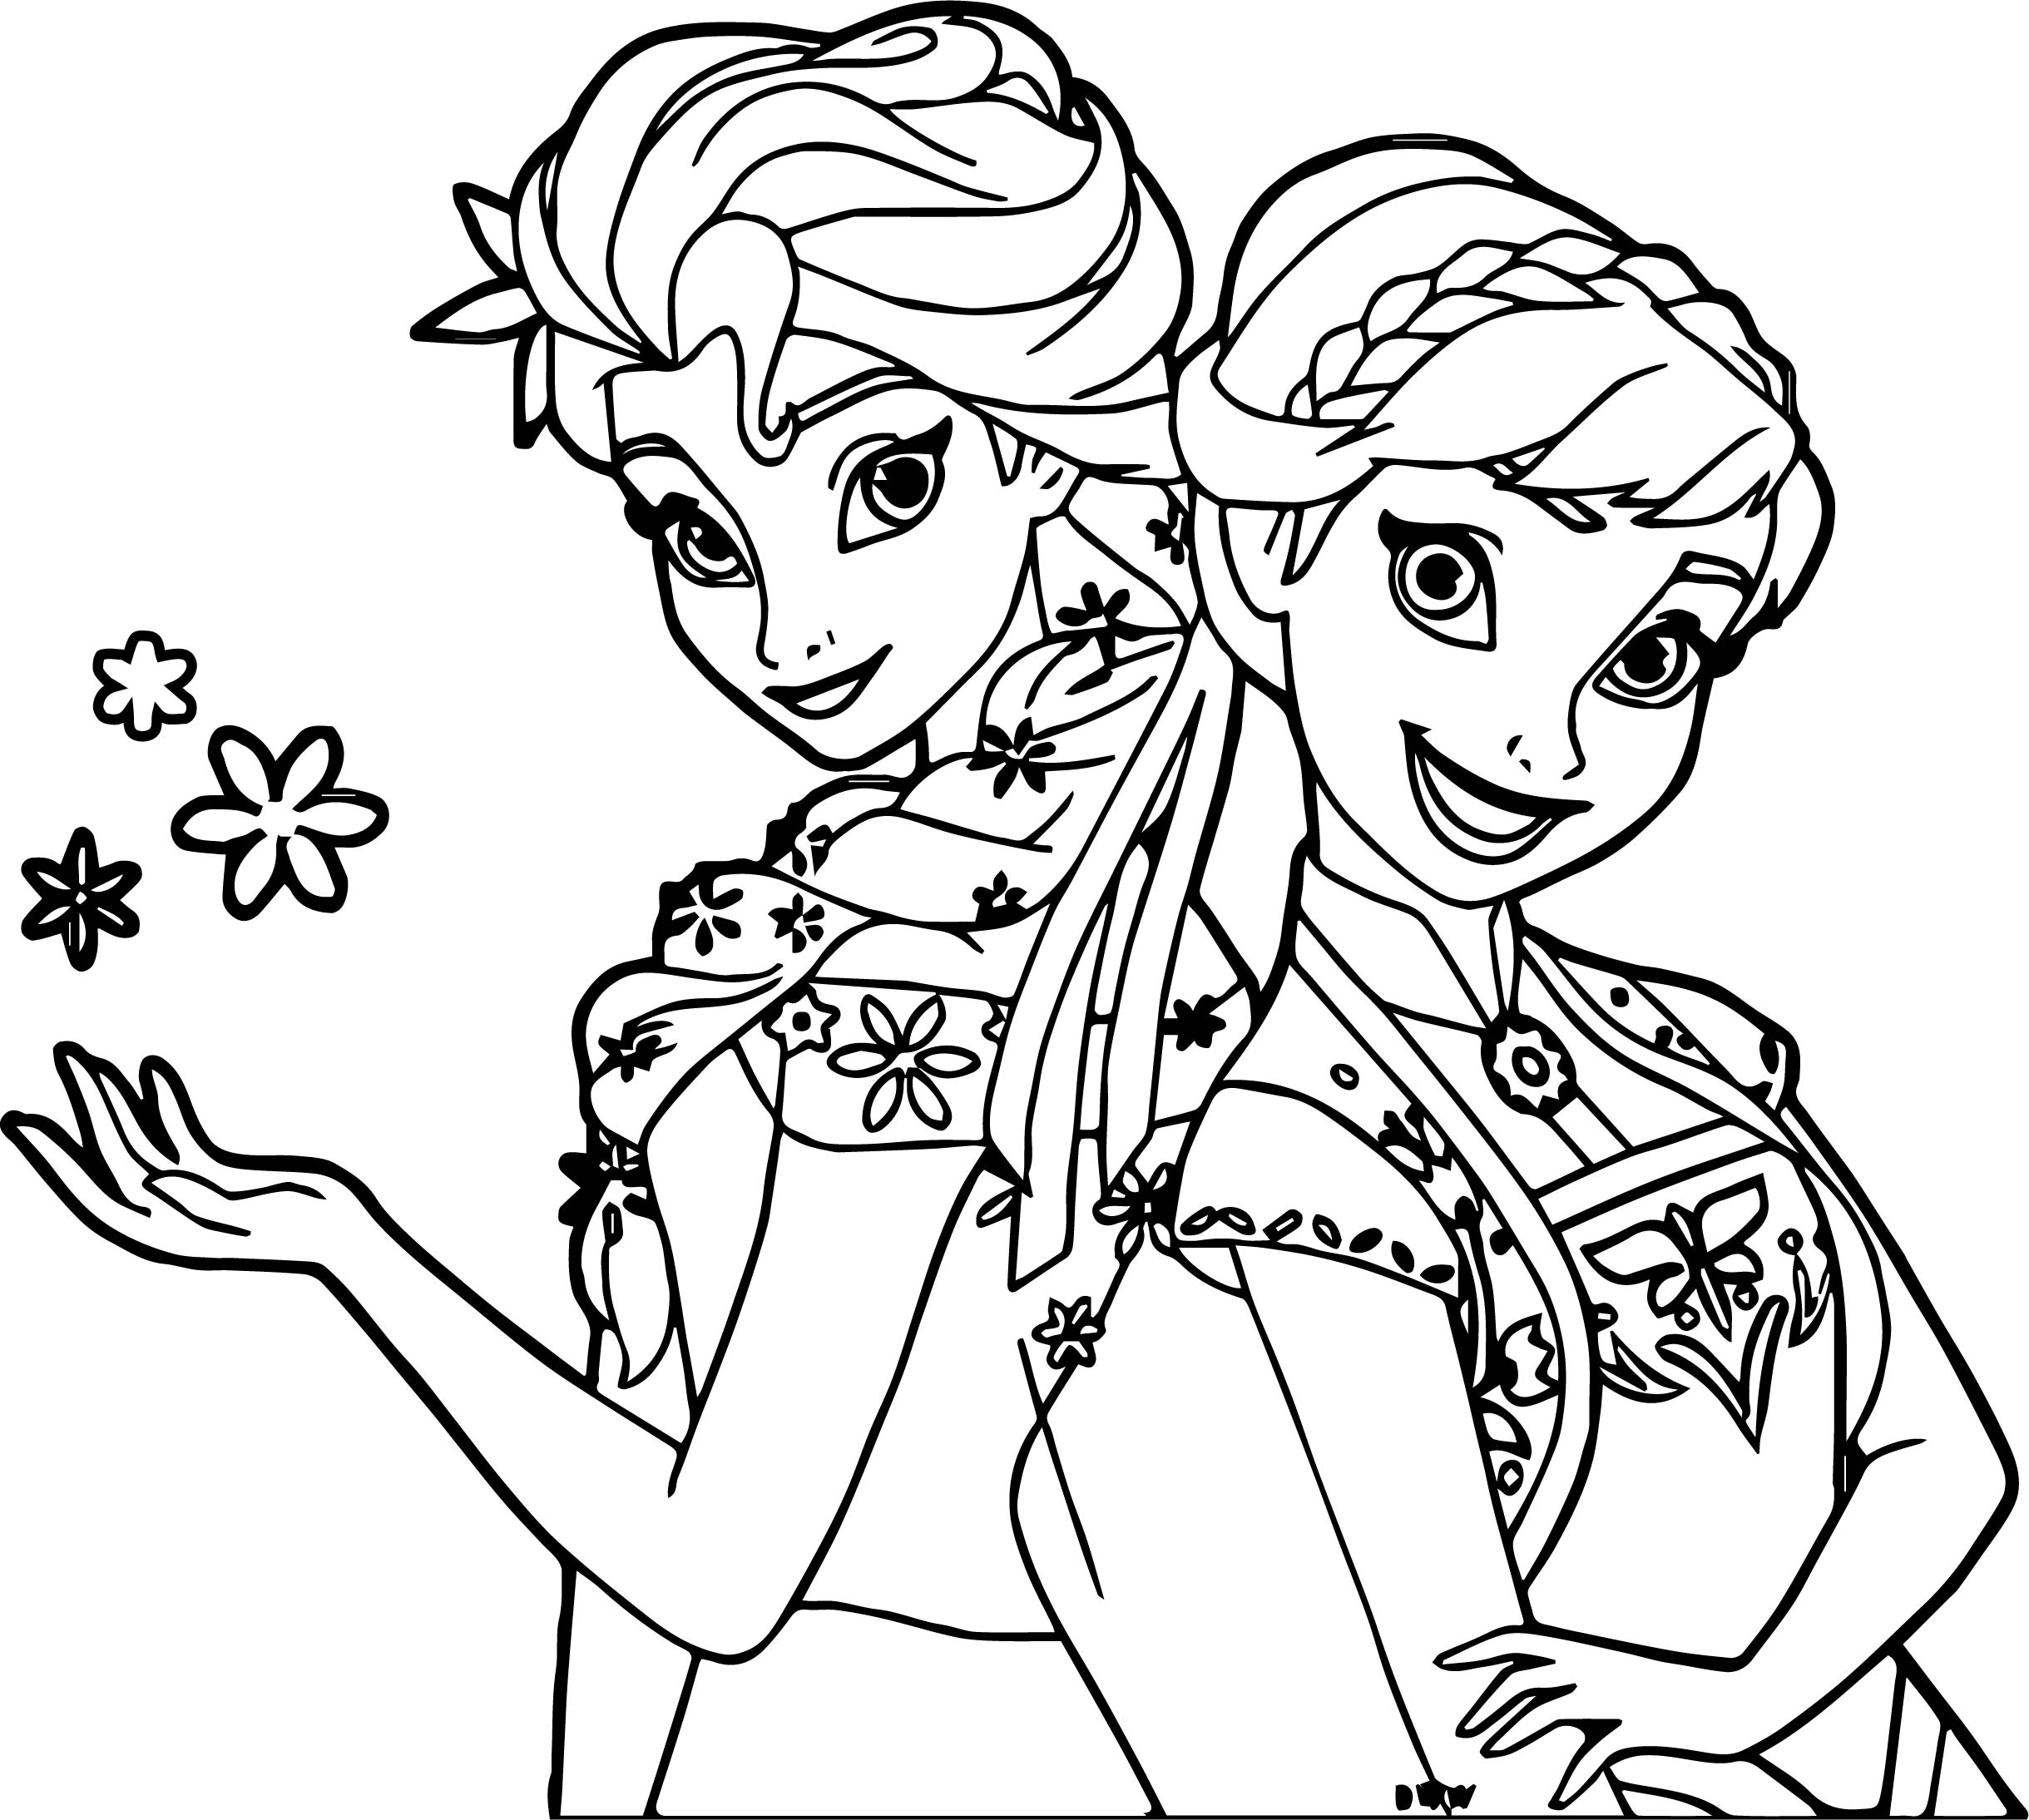 Frozen Fever And Anna Snow Coloring Page  Wecoloringpagecom